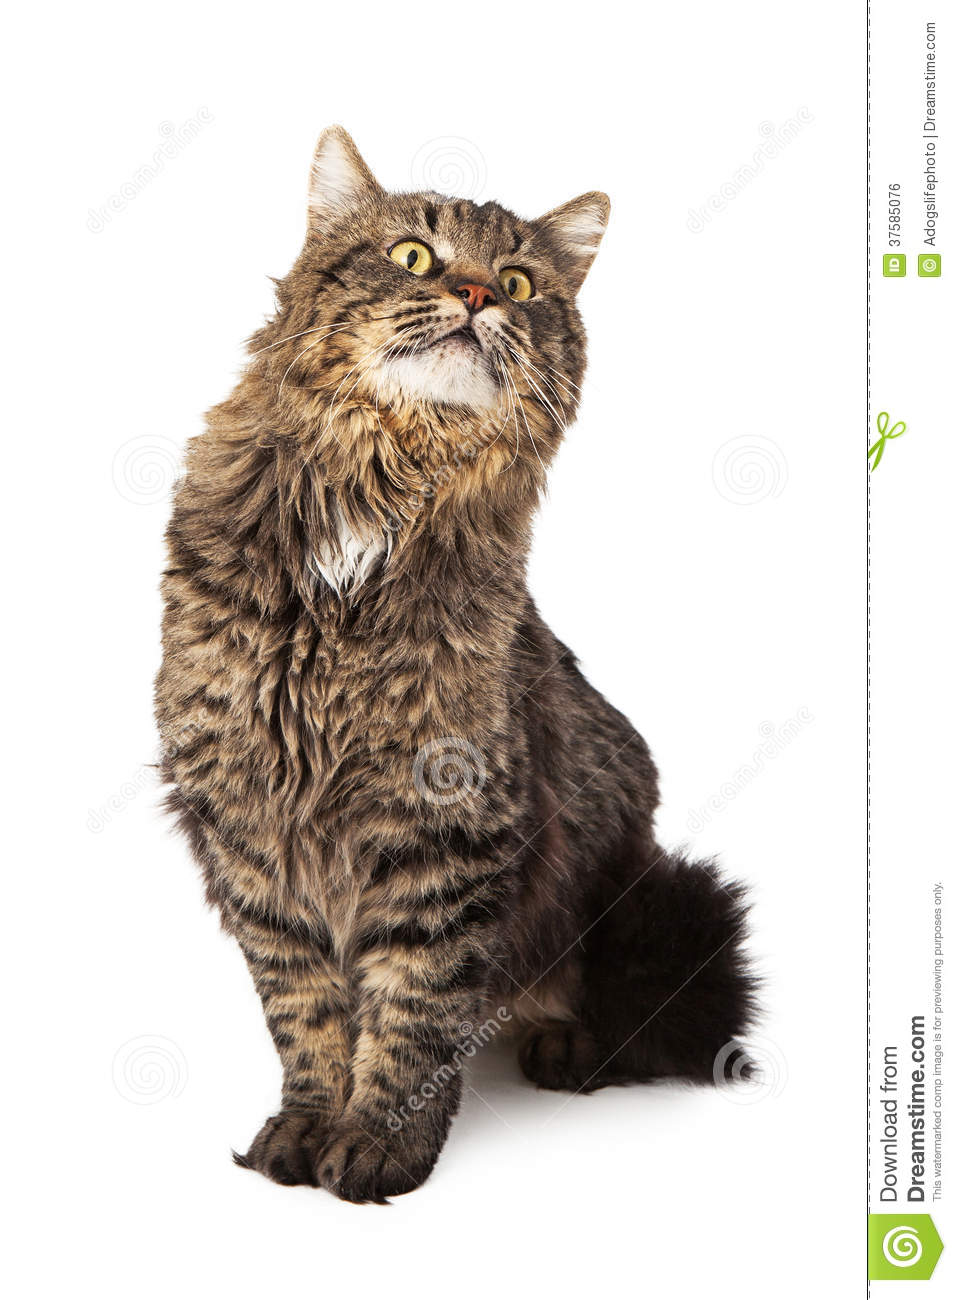 Long Haired Tabby Cat Sitting Looking Up Royalty Free ... Tabby Cat Sitting Up